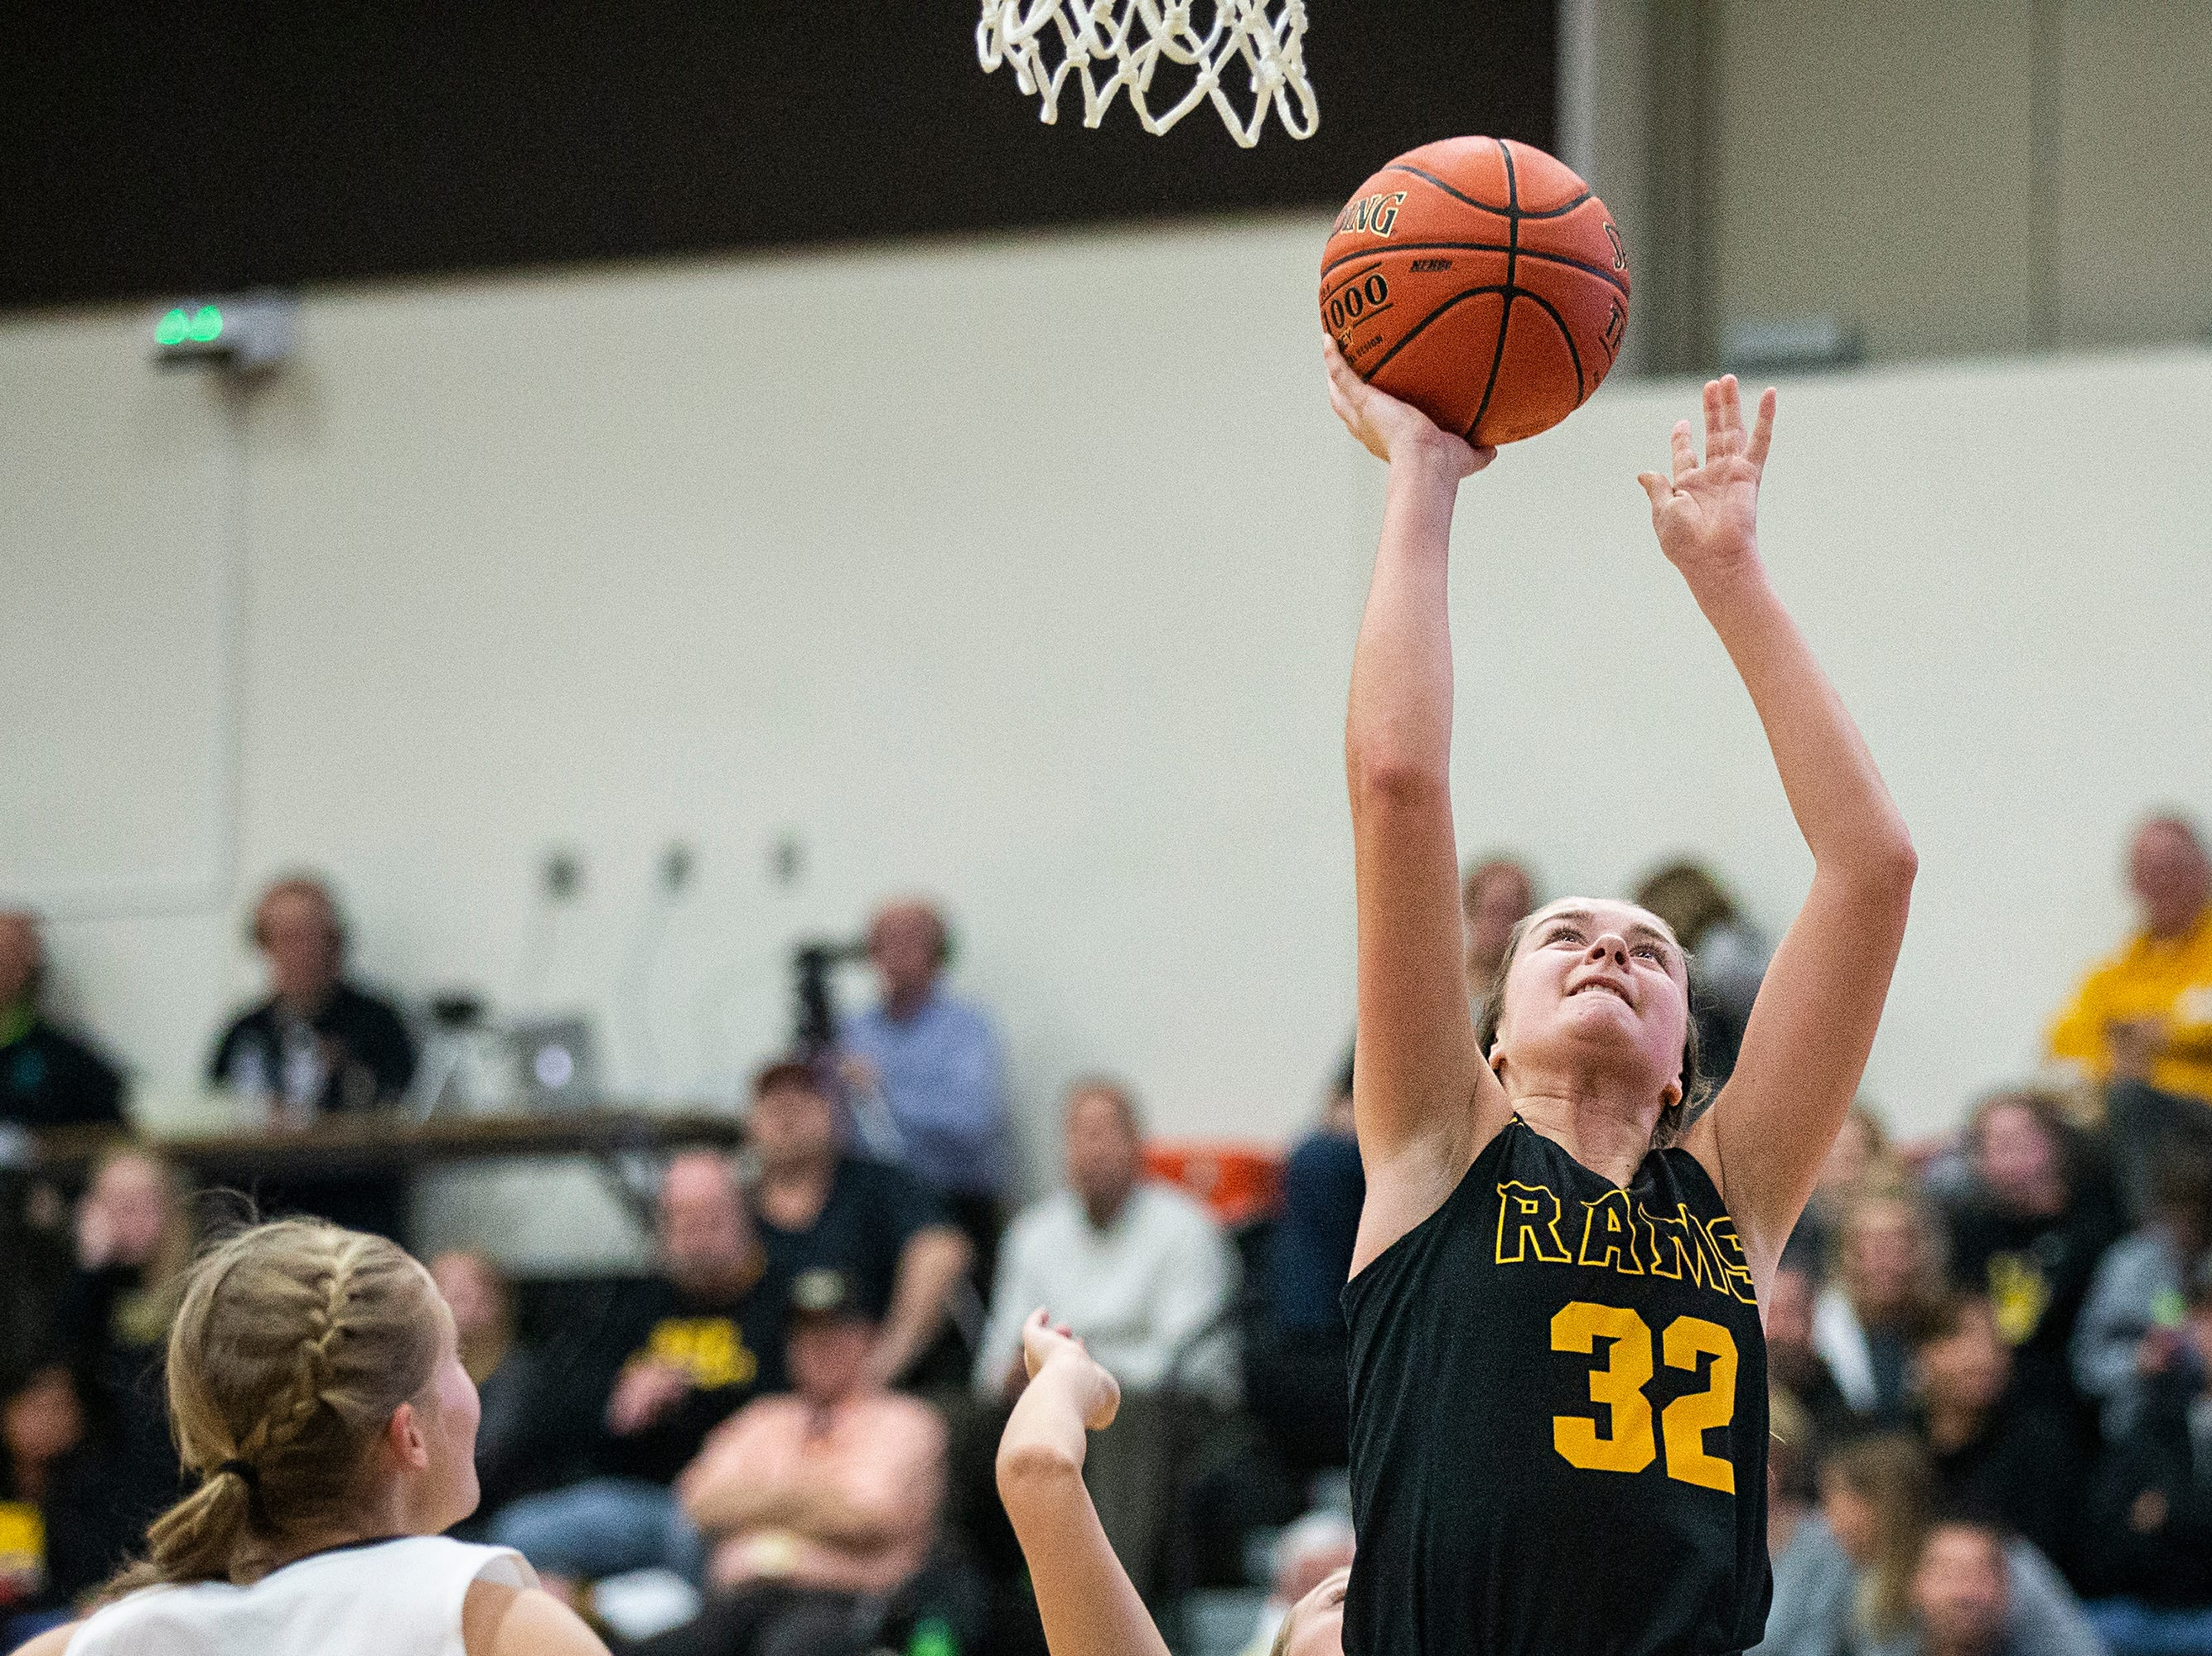 SEP's Maggie McGraw shoots the ball during the Southeast Polk vs. Ankeny Centennial girls' basketball game on Tuesday, Nov. 27, 2018, at Ankeny Centennial High School.